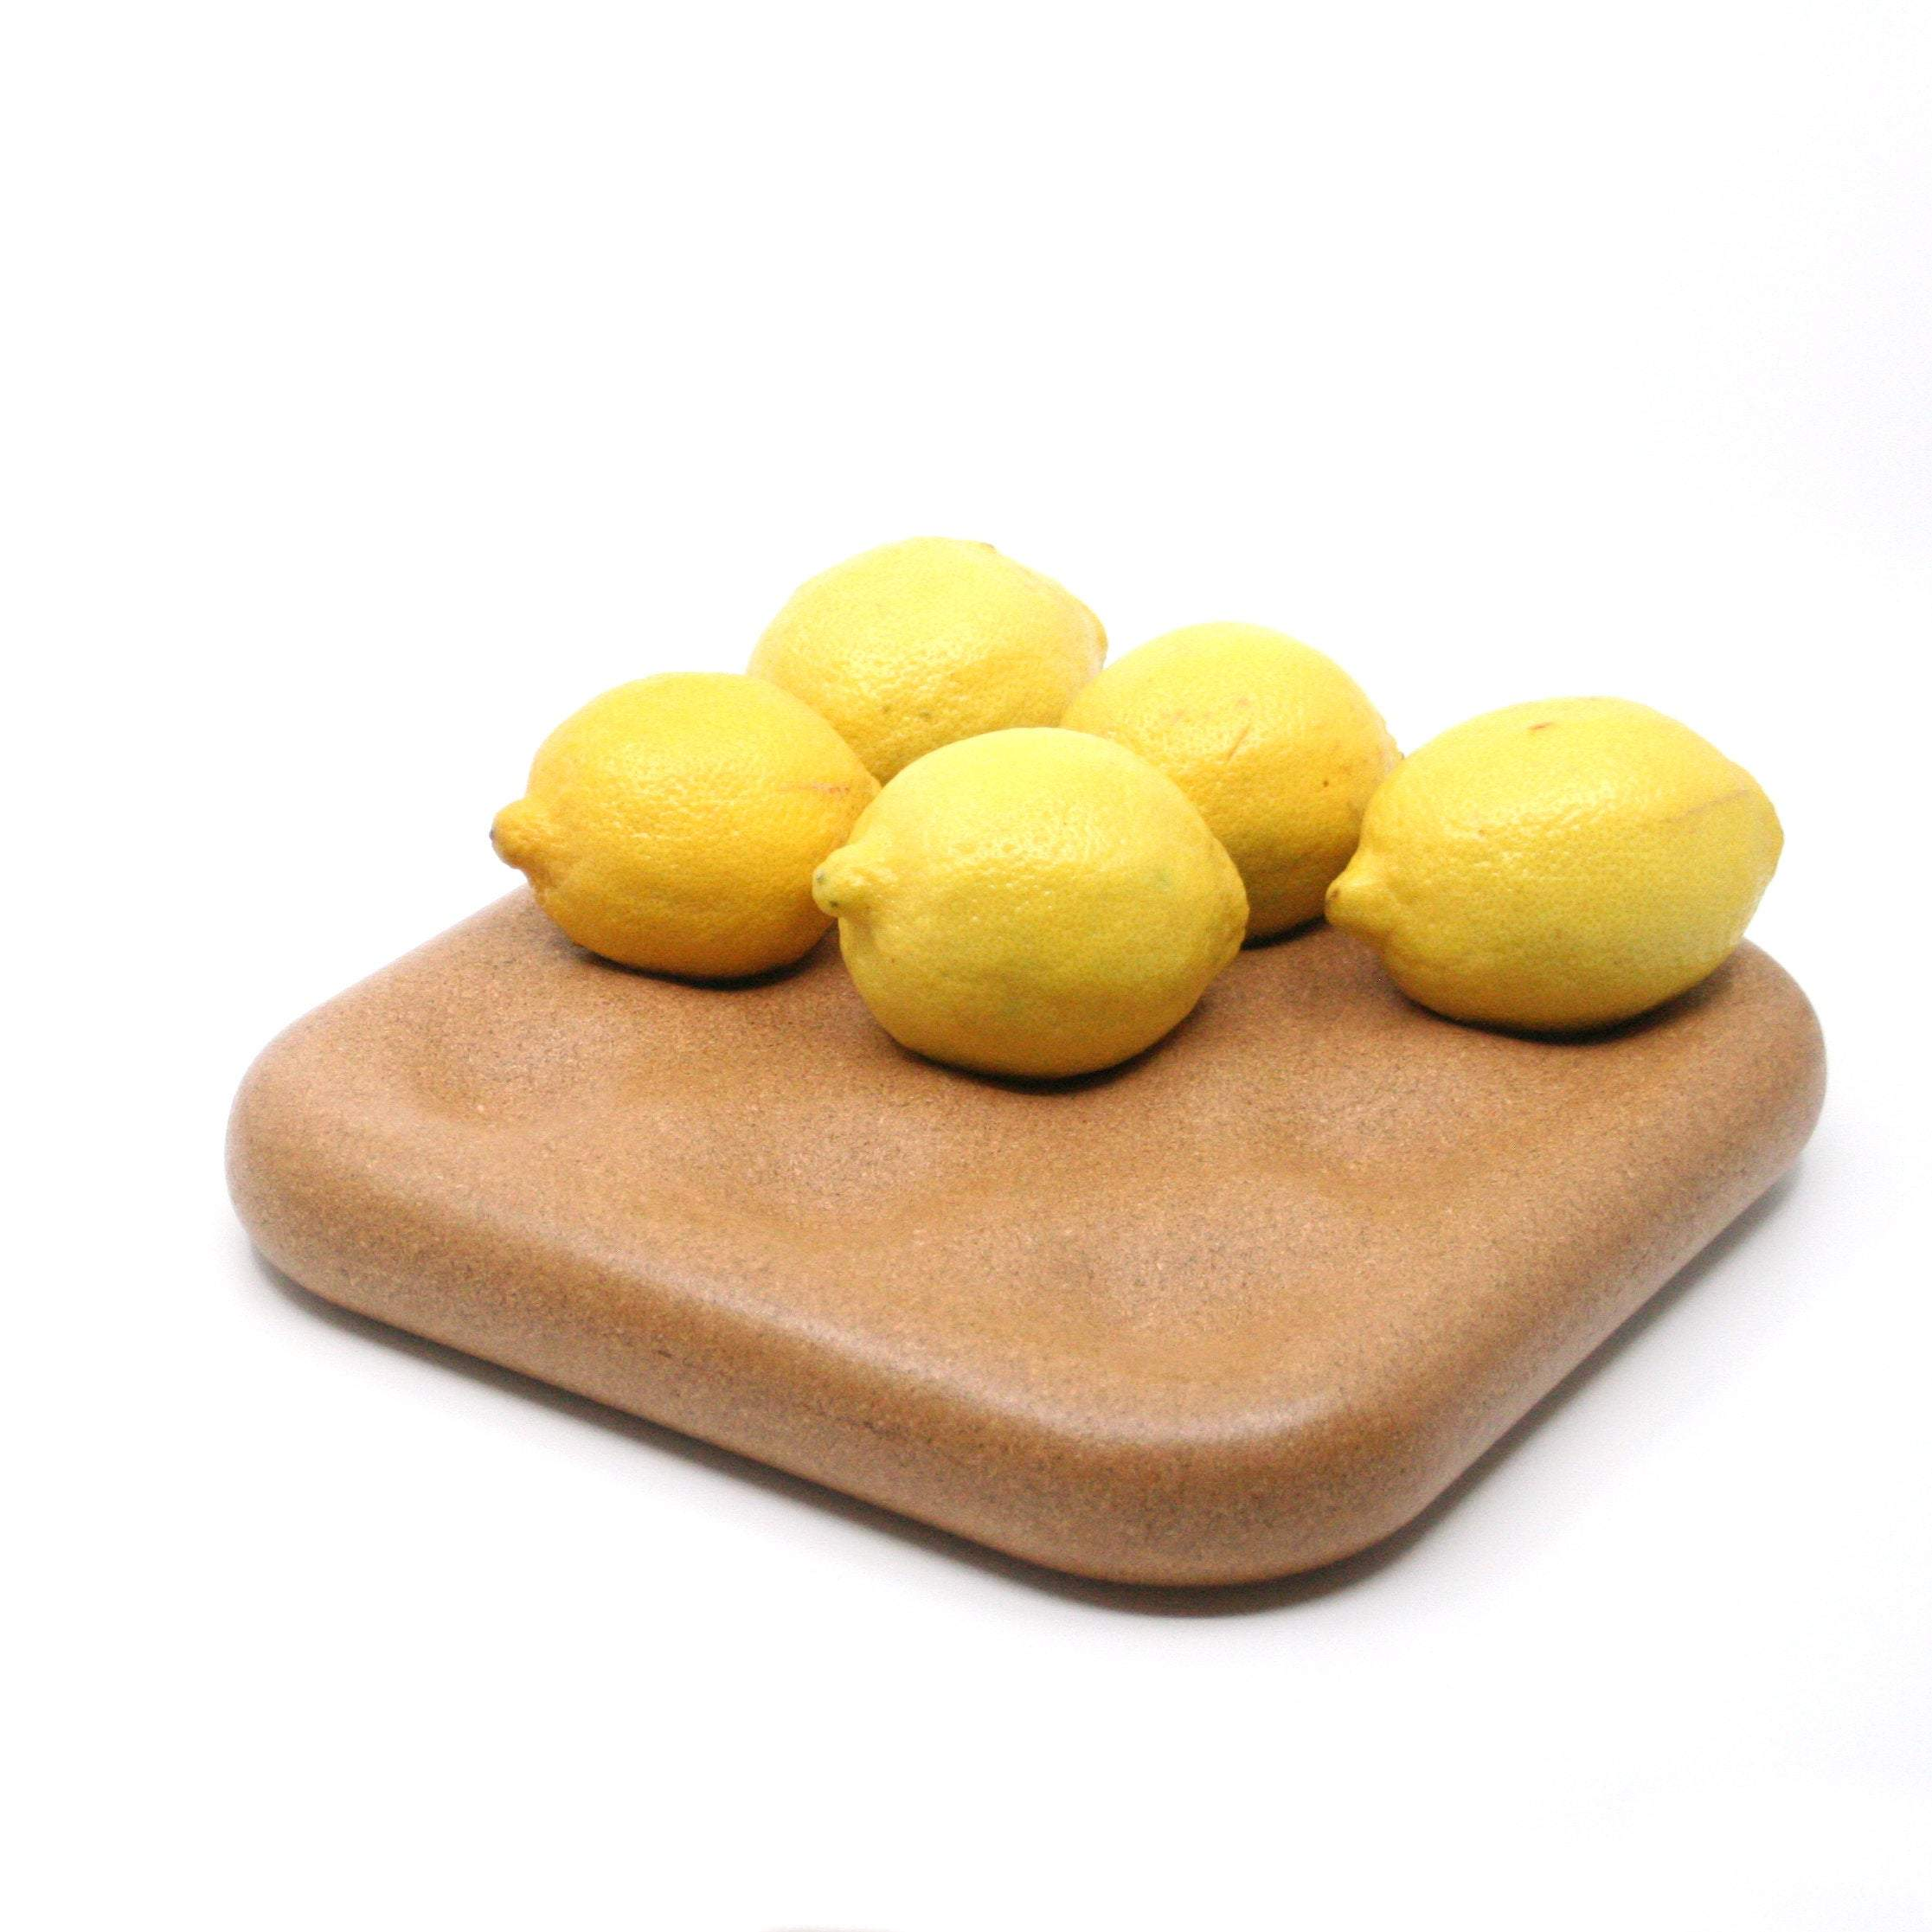 Sealed Natural Cork Dimple Tray Fruit Bowl